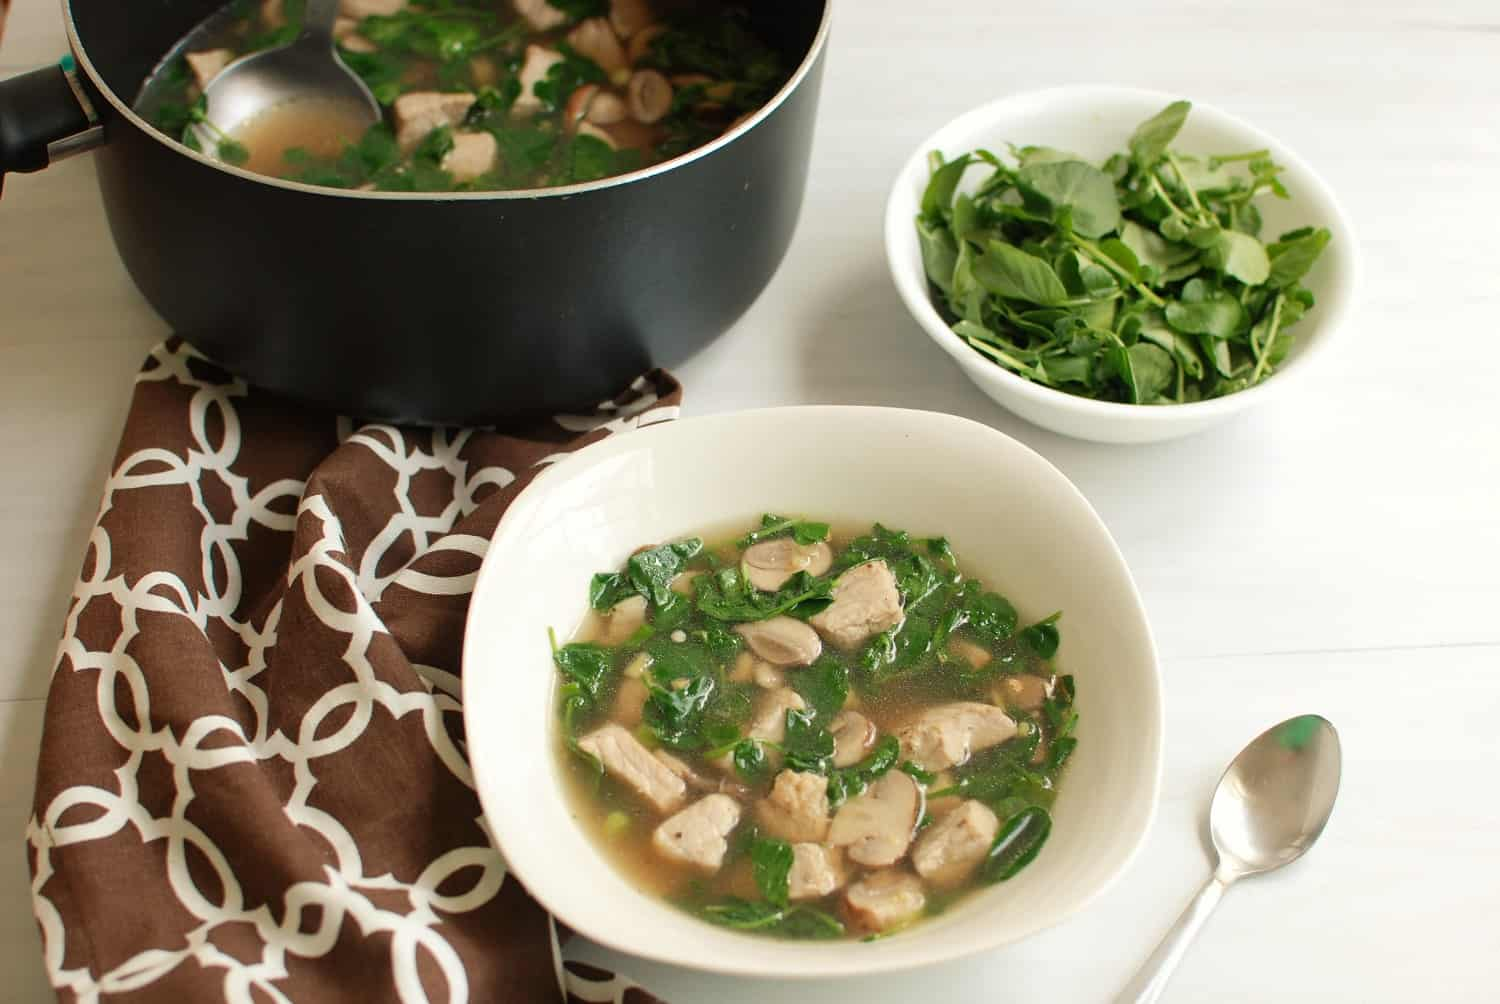 A bowl and pot of pork watercress soup, next to a bowl of watercress